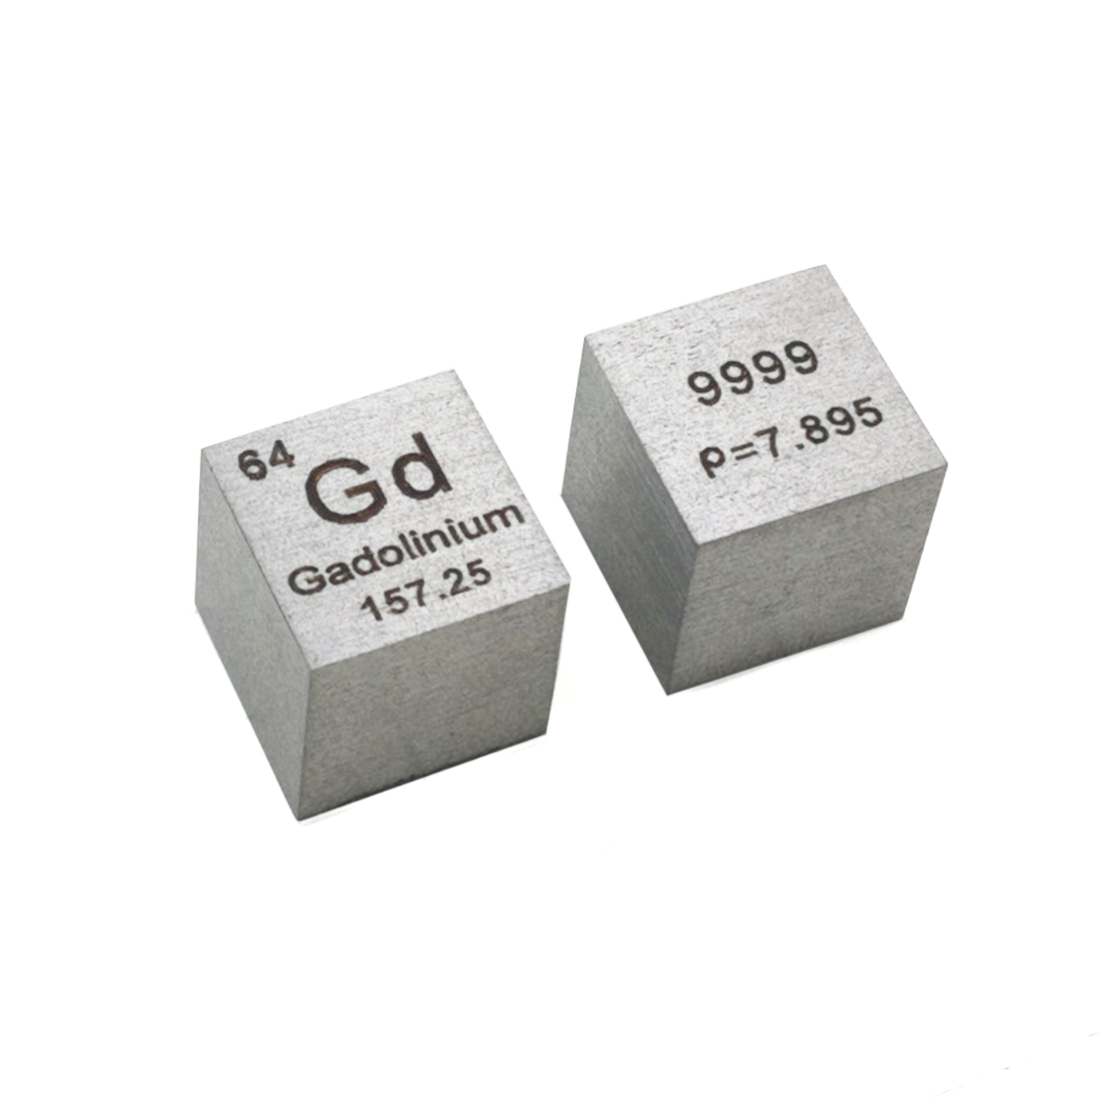 10 X 10 X 10mm (Gd≥99.99%) Wiredrawing Metal Gadolinium Cube Rare Earth Elements Cube Periodic Table Of Elements Cube